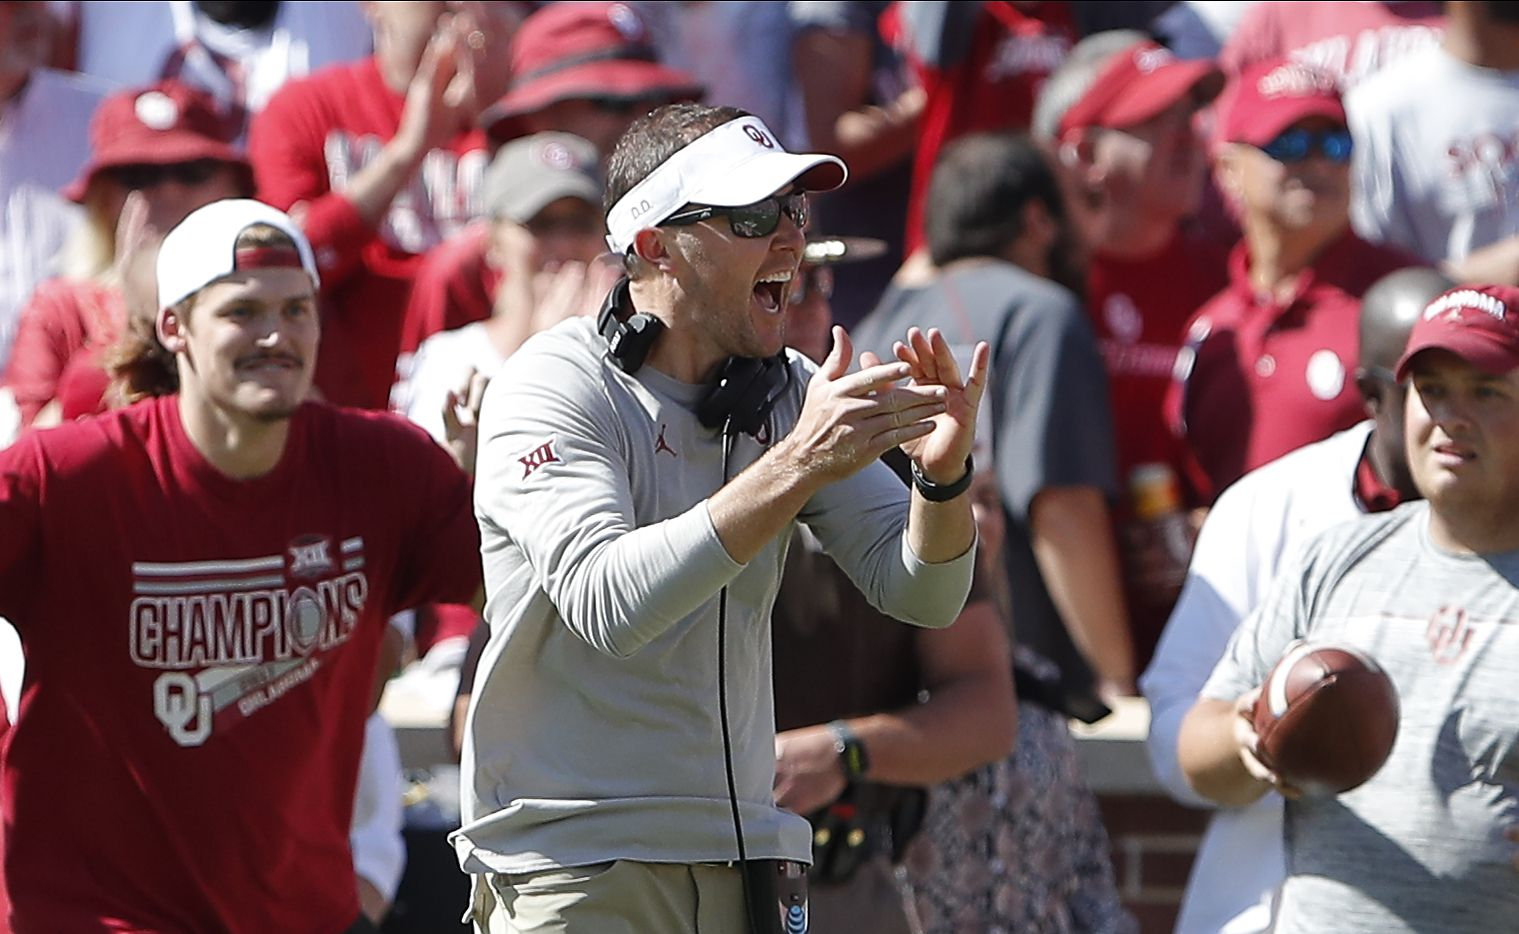 Oklahoma head coach Lincoln Riley celebrates after a blocked West Virginia kick during the second half of an NCAA college football game in Norman, Okla., Saturday, Oct. 19, 2019. Oklahoma won 52-14.